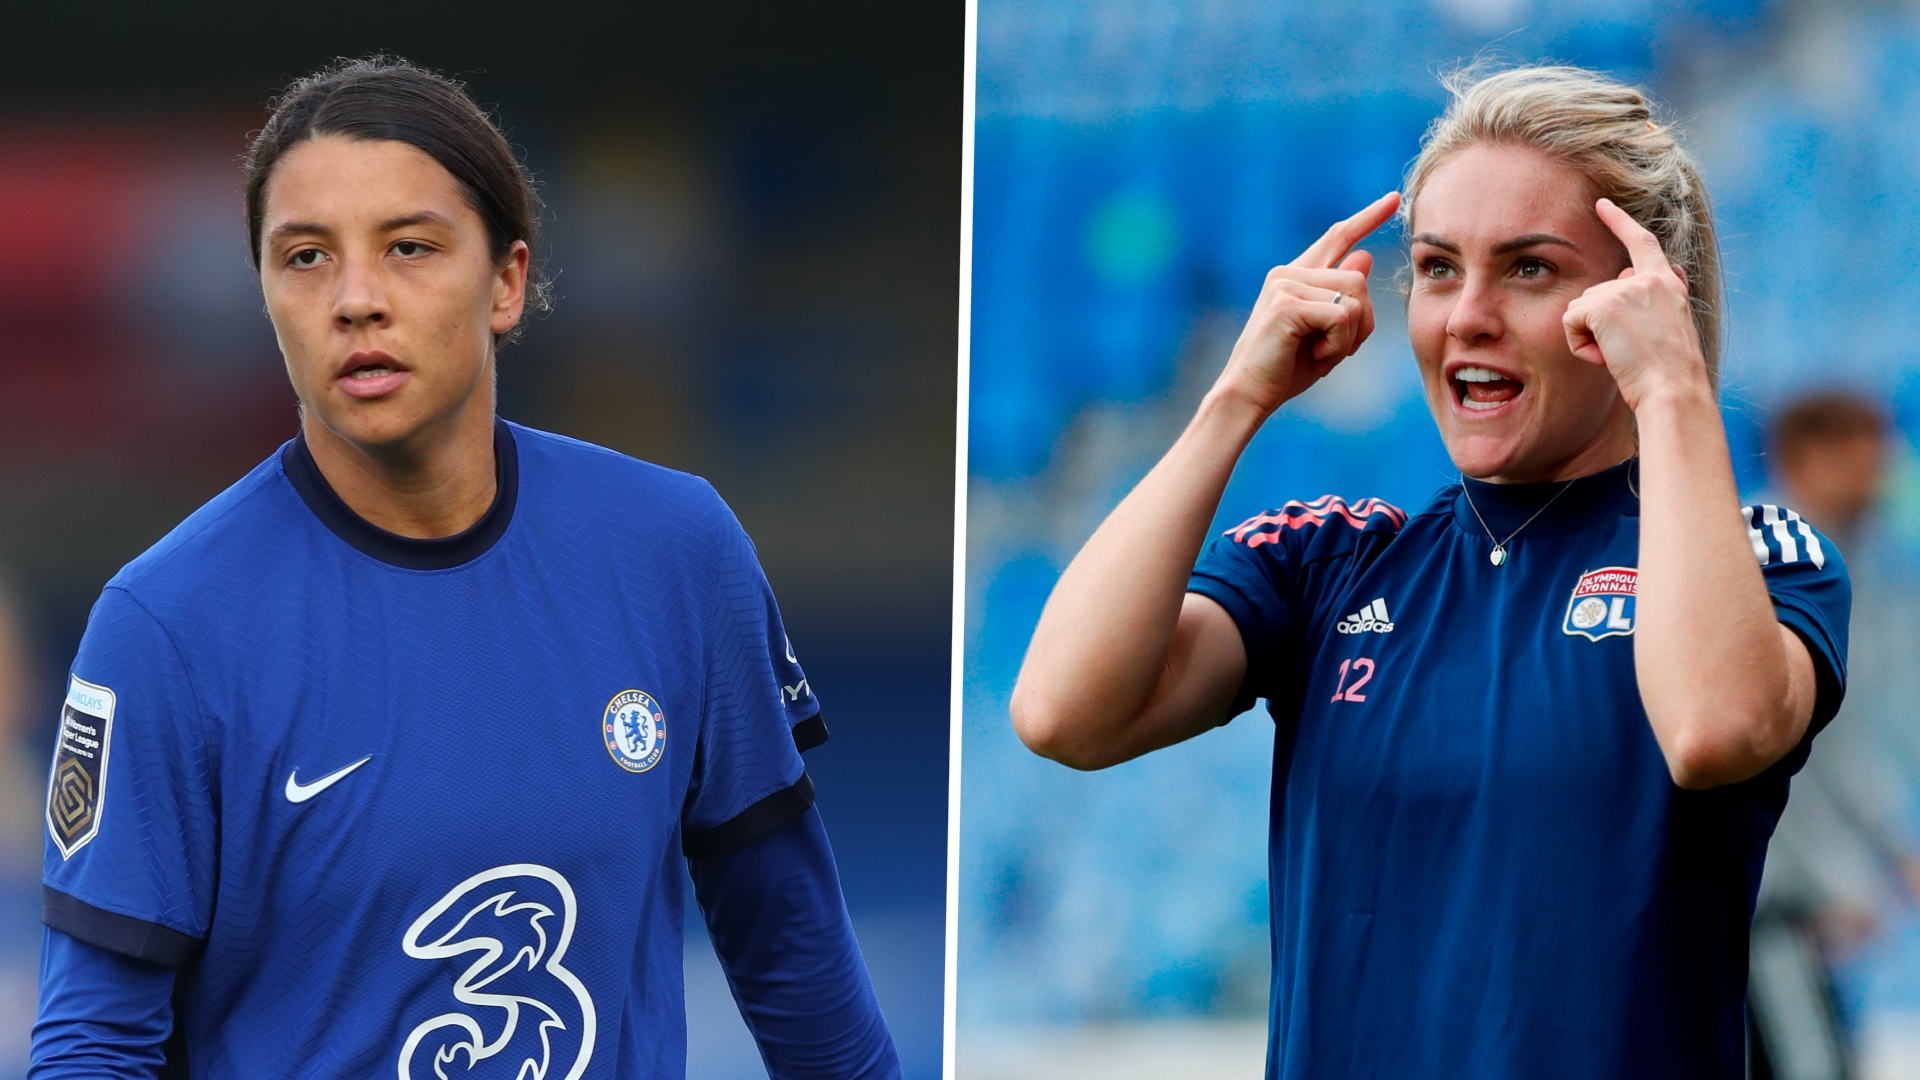 Kerr and Carpenter headline Aussies in UEFA Women's Champions League action